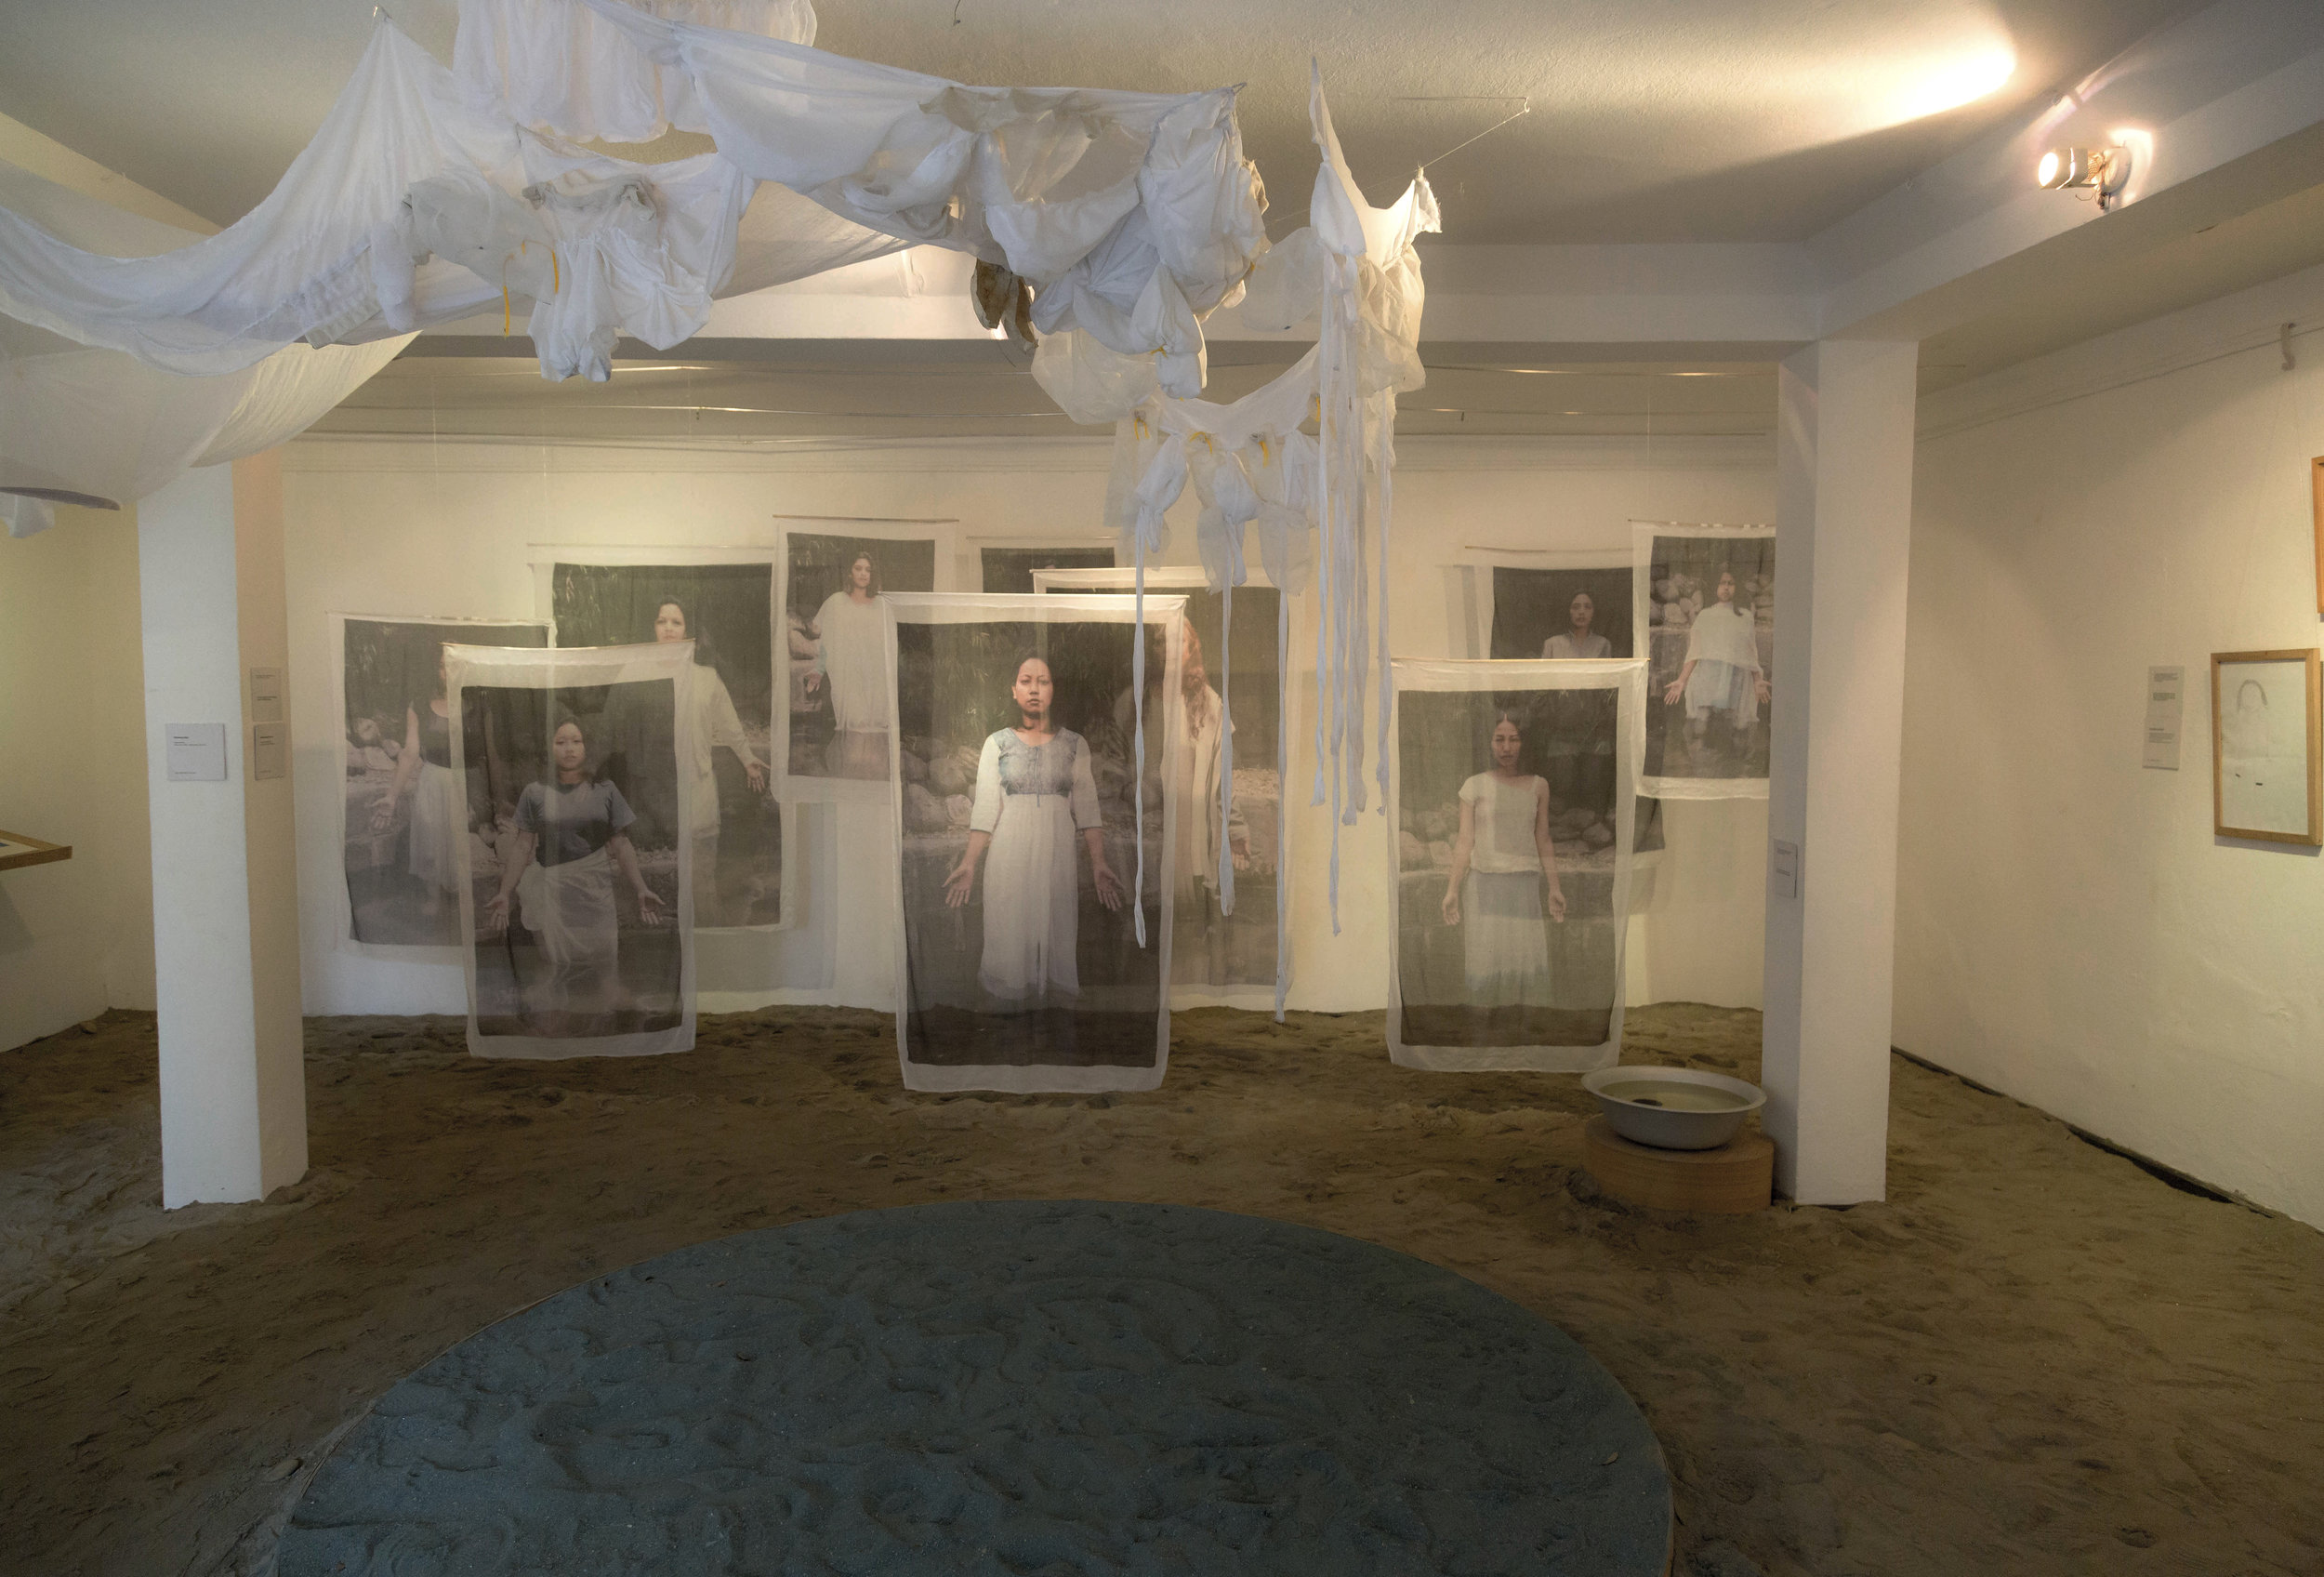 Ground floor of the exhibition, featuring sand installation and raised platform for performances.